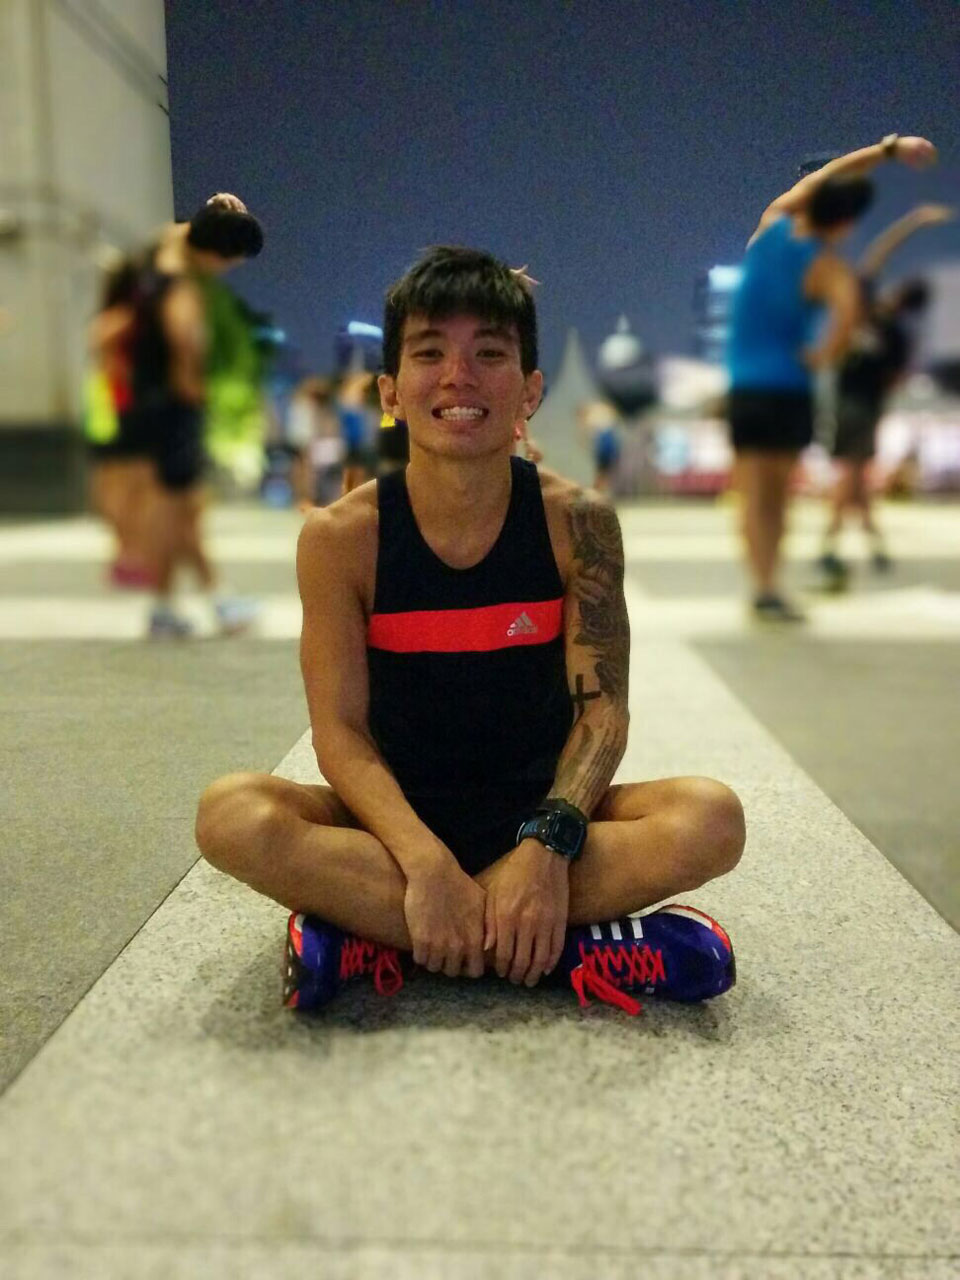 Hubert CJY: His Lofty Goal? Running a 3-Hour Full Marathon!